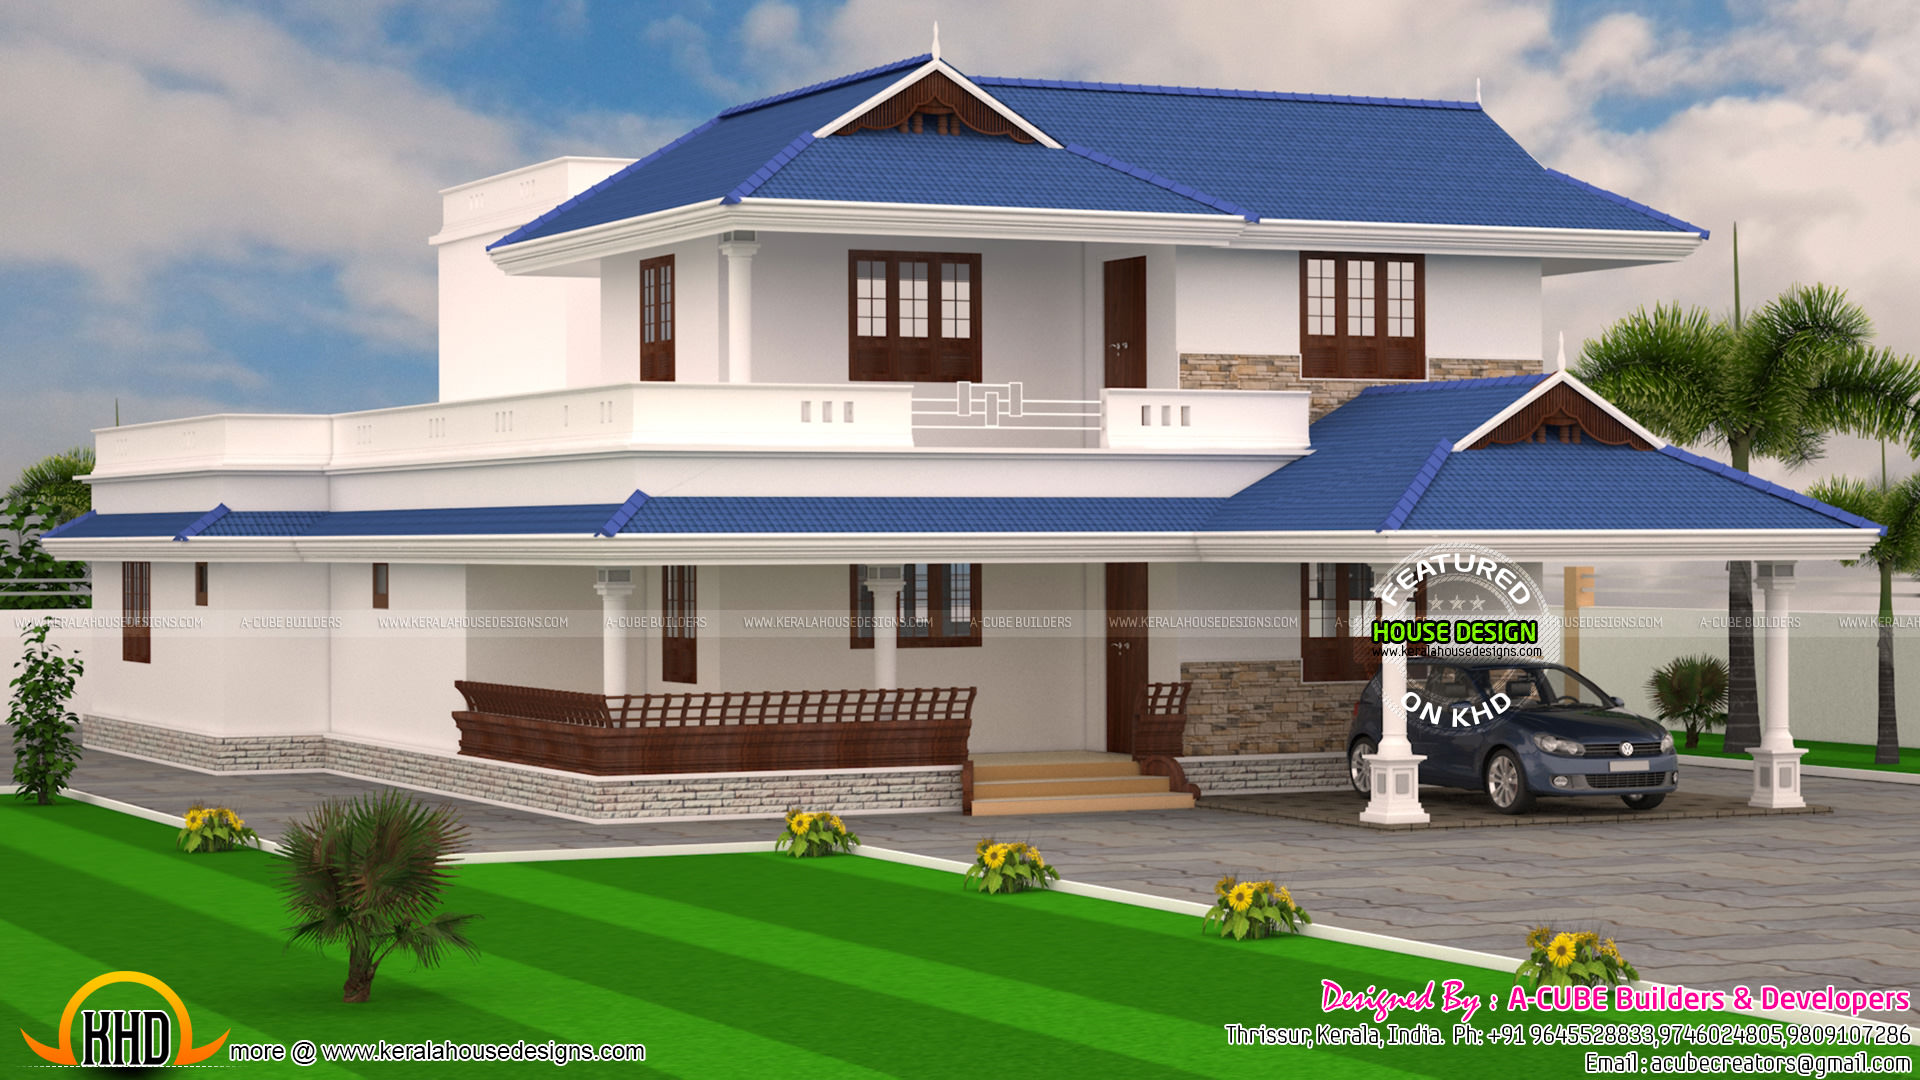 Kerala new model house joy studio design gallery best for Kerala new model house plan